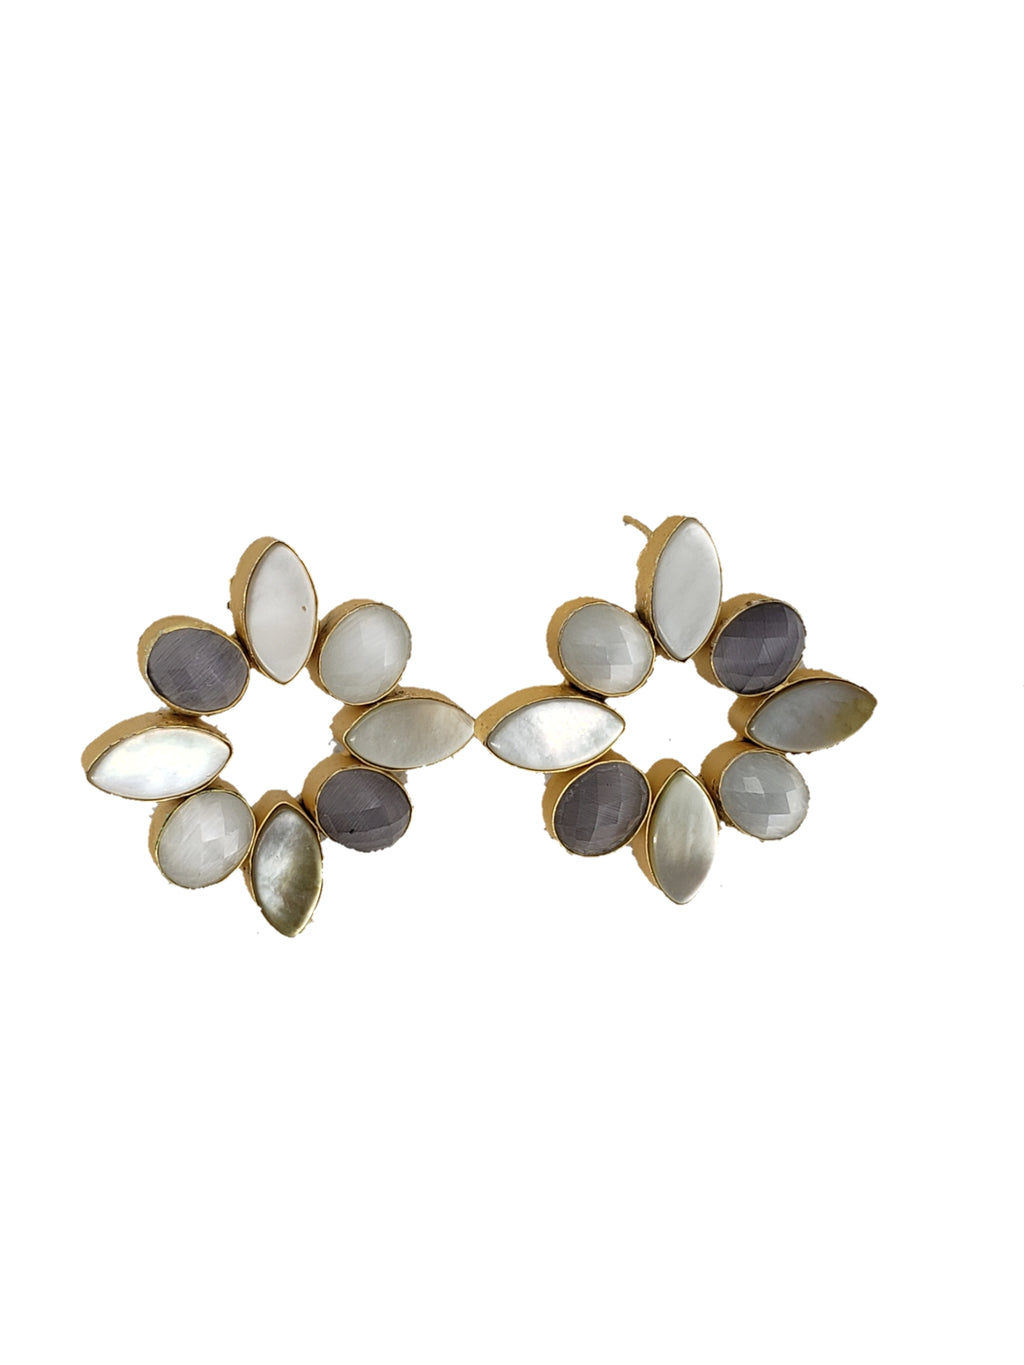 Lavender and Mother of Pearl Stud Earrings - The Bauble Shop